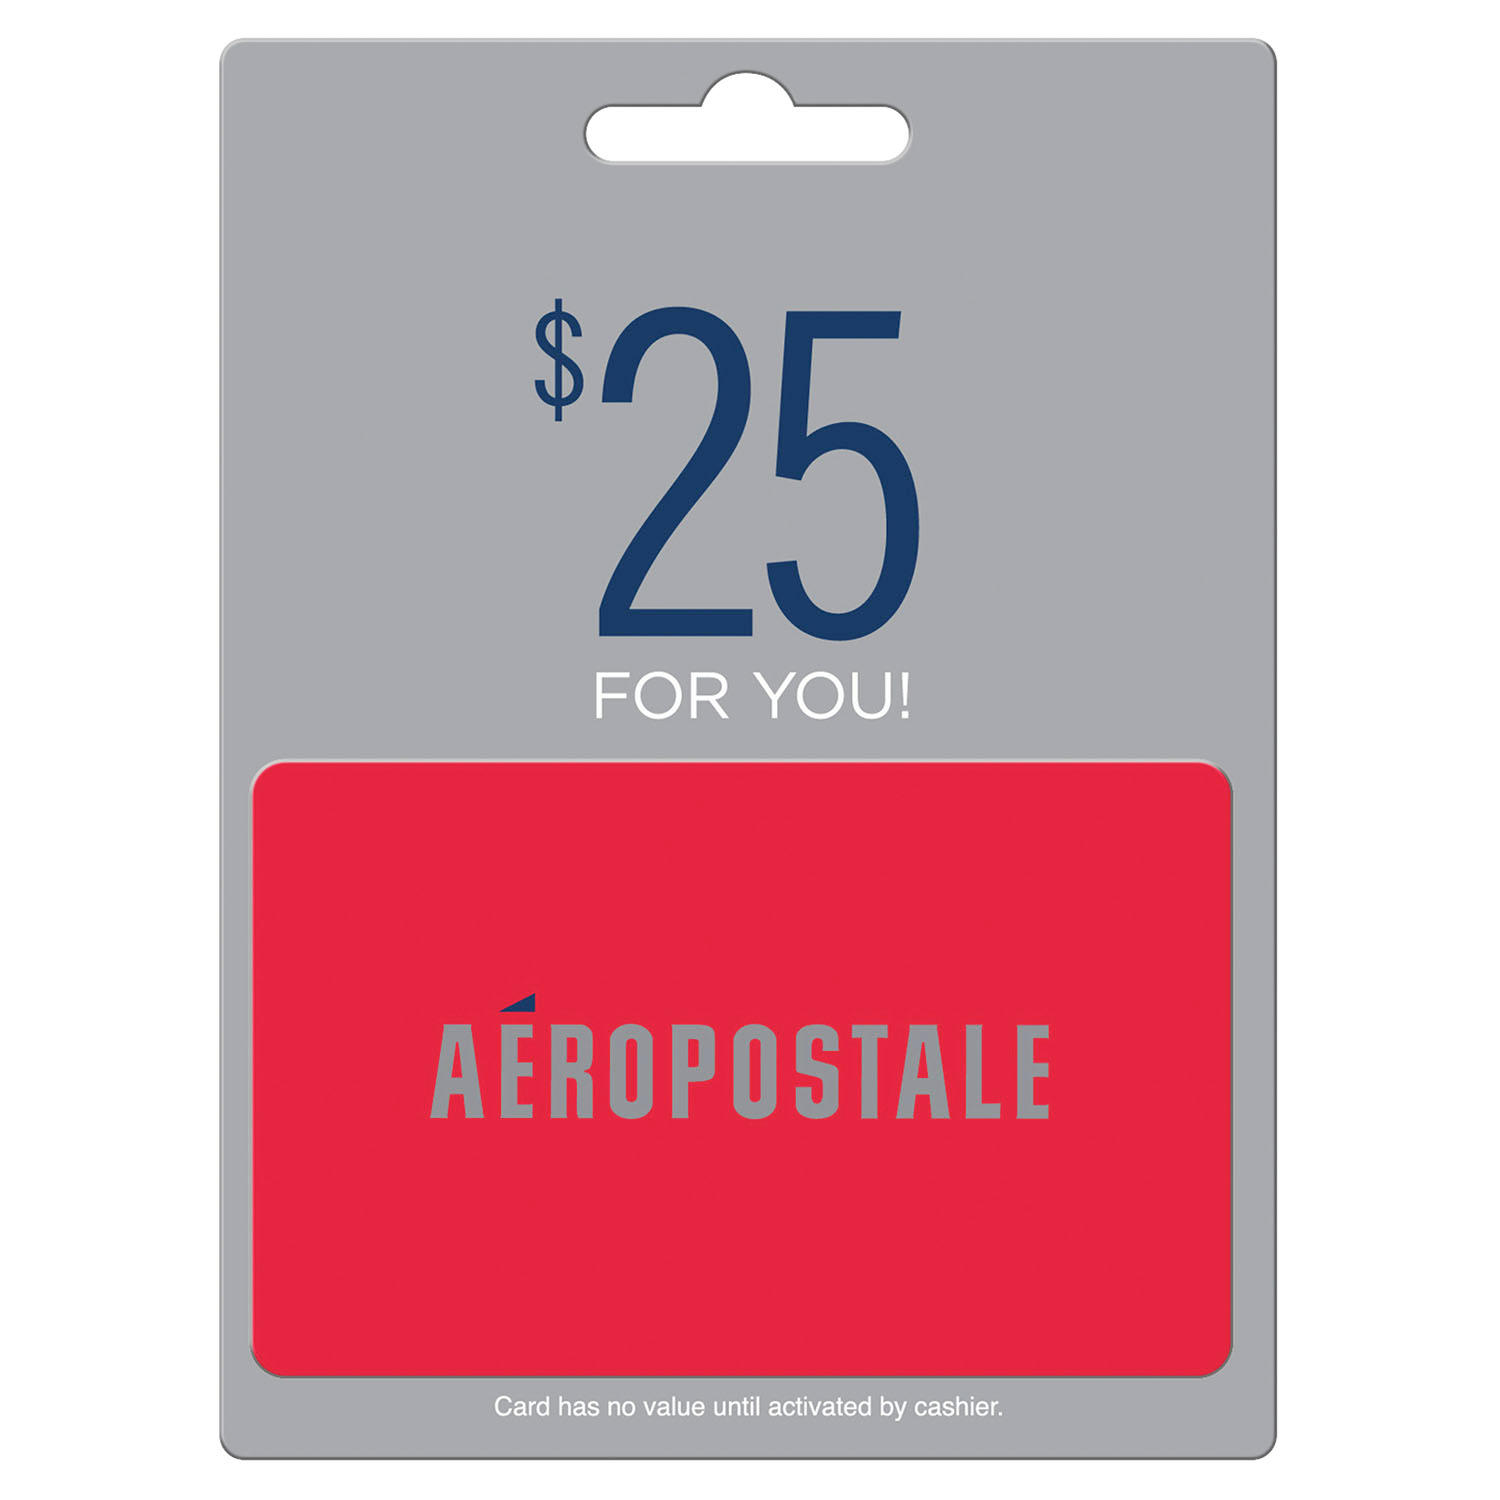 $50 (2 x $25) Aeropostale Value Gift Cards